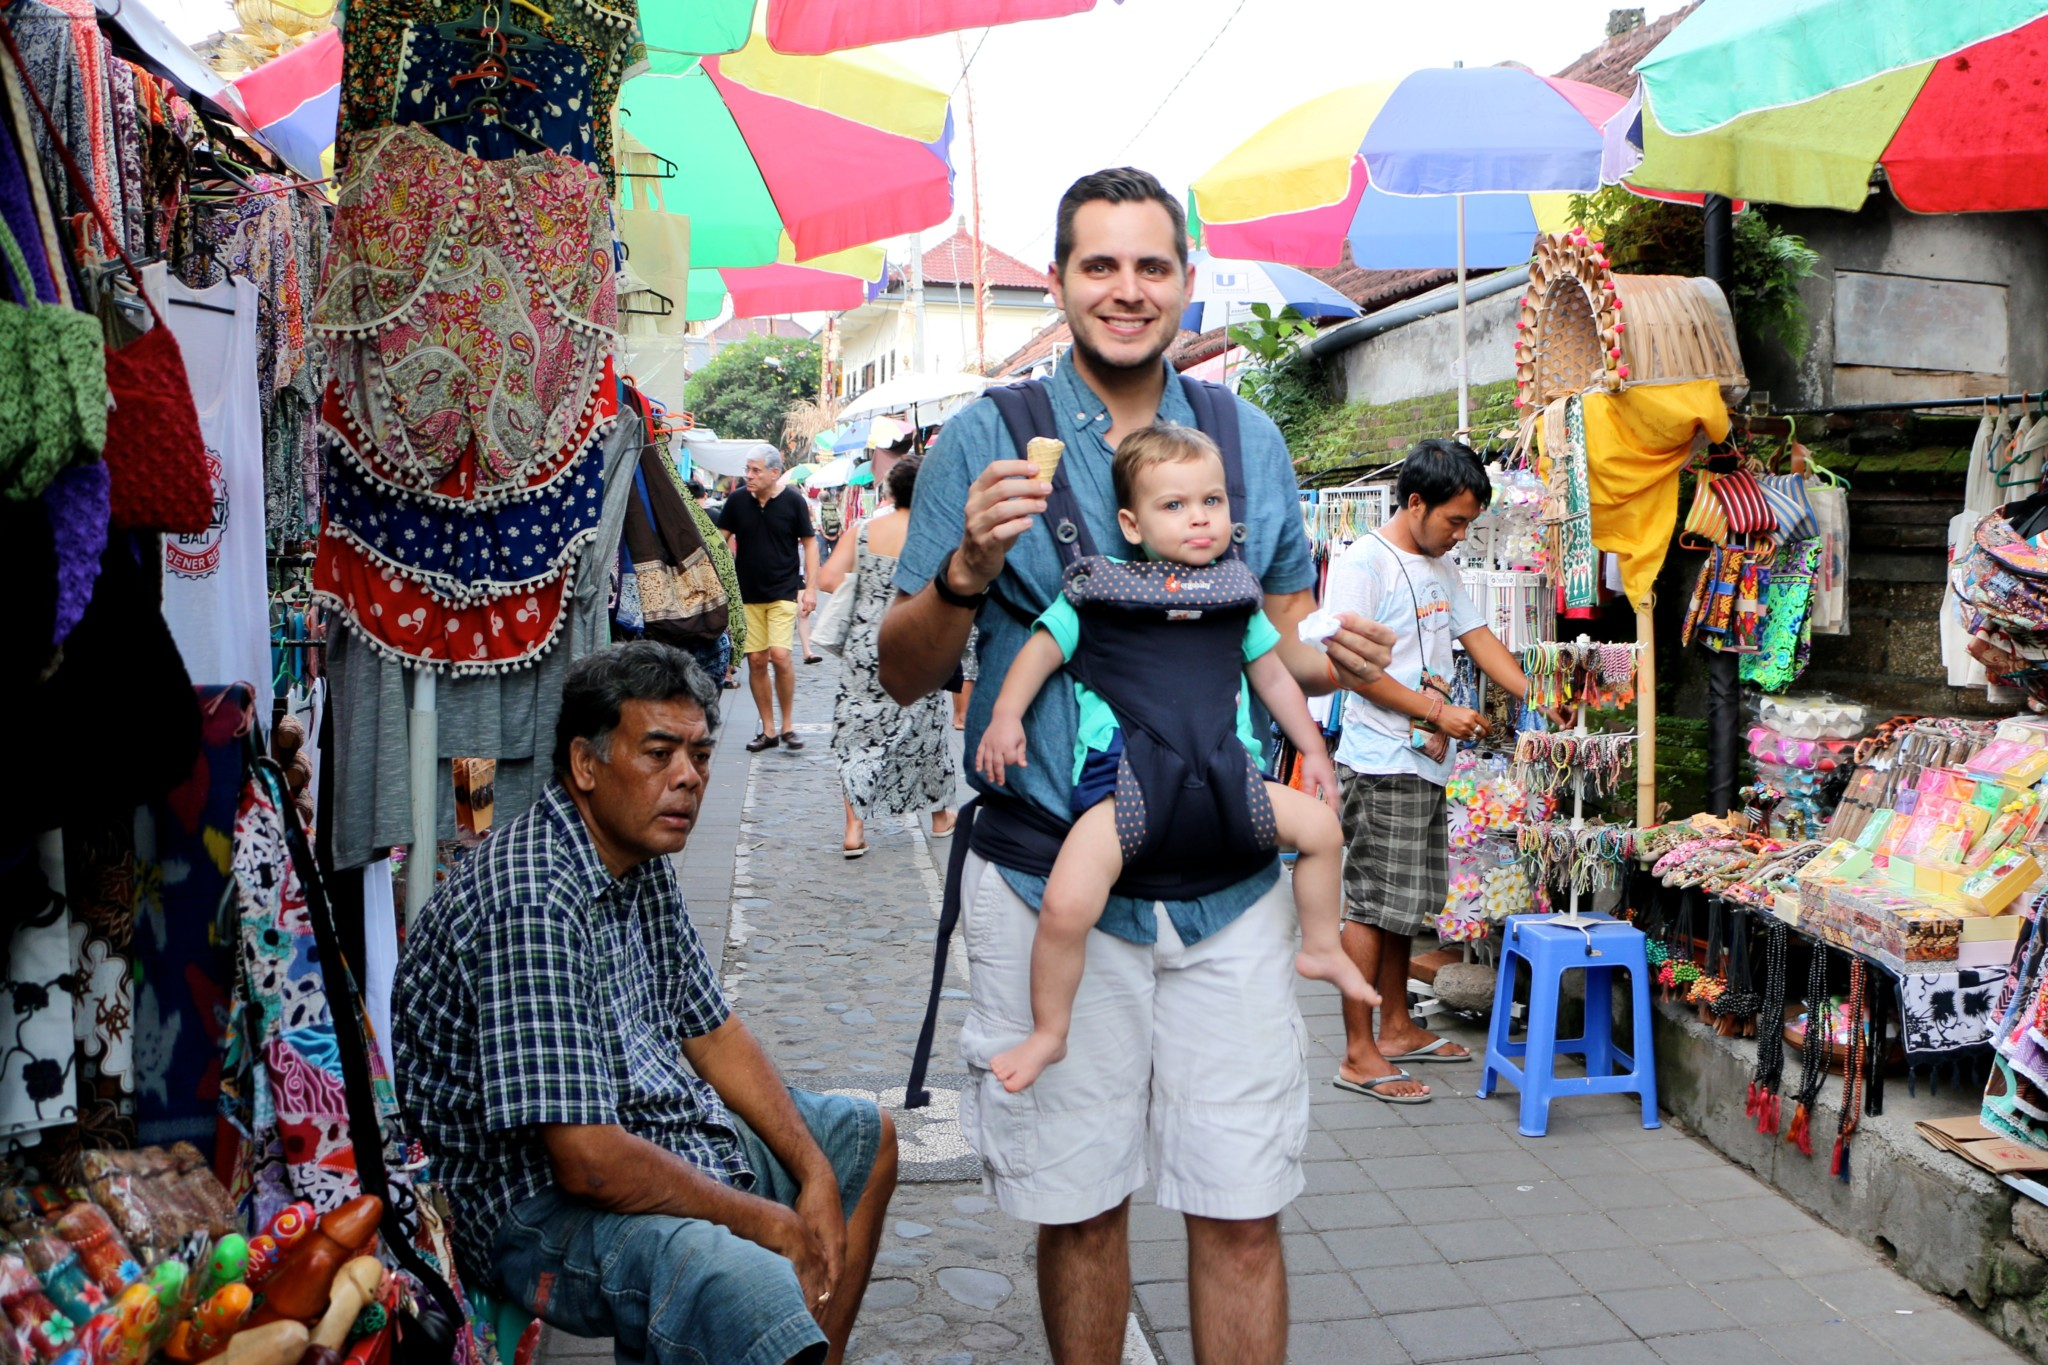 Karna Shopping Street Bali Travelin With Jc Balinese Traditional Market We Loved The Small Alleyways That Lead Off Main Here There Were A Number Of Hostels Compounds And Businesses Hidden In Tiny